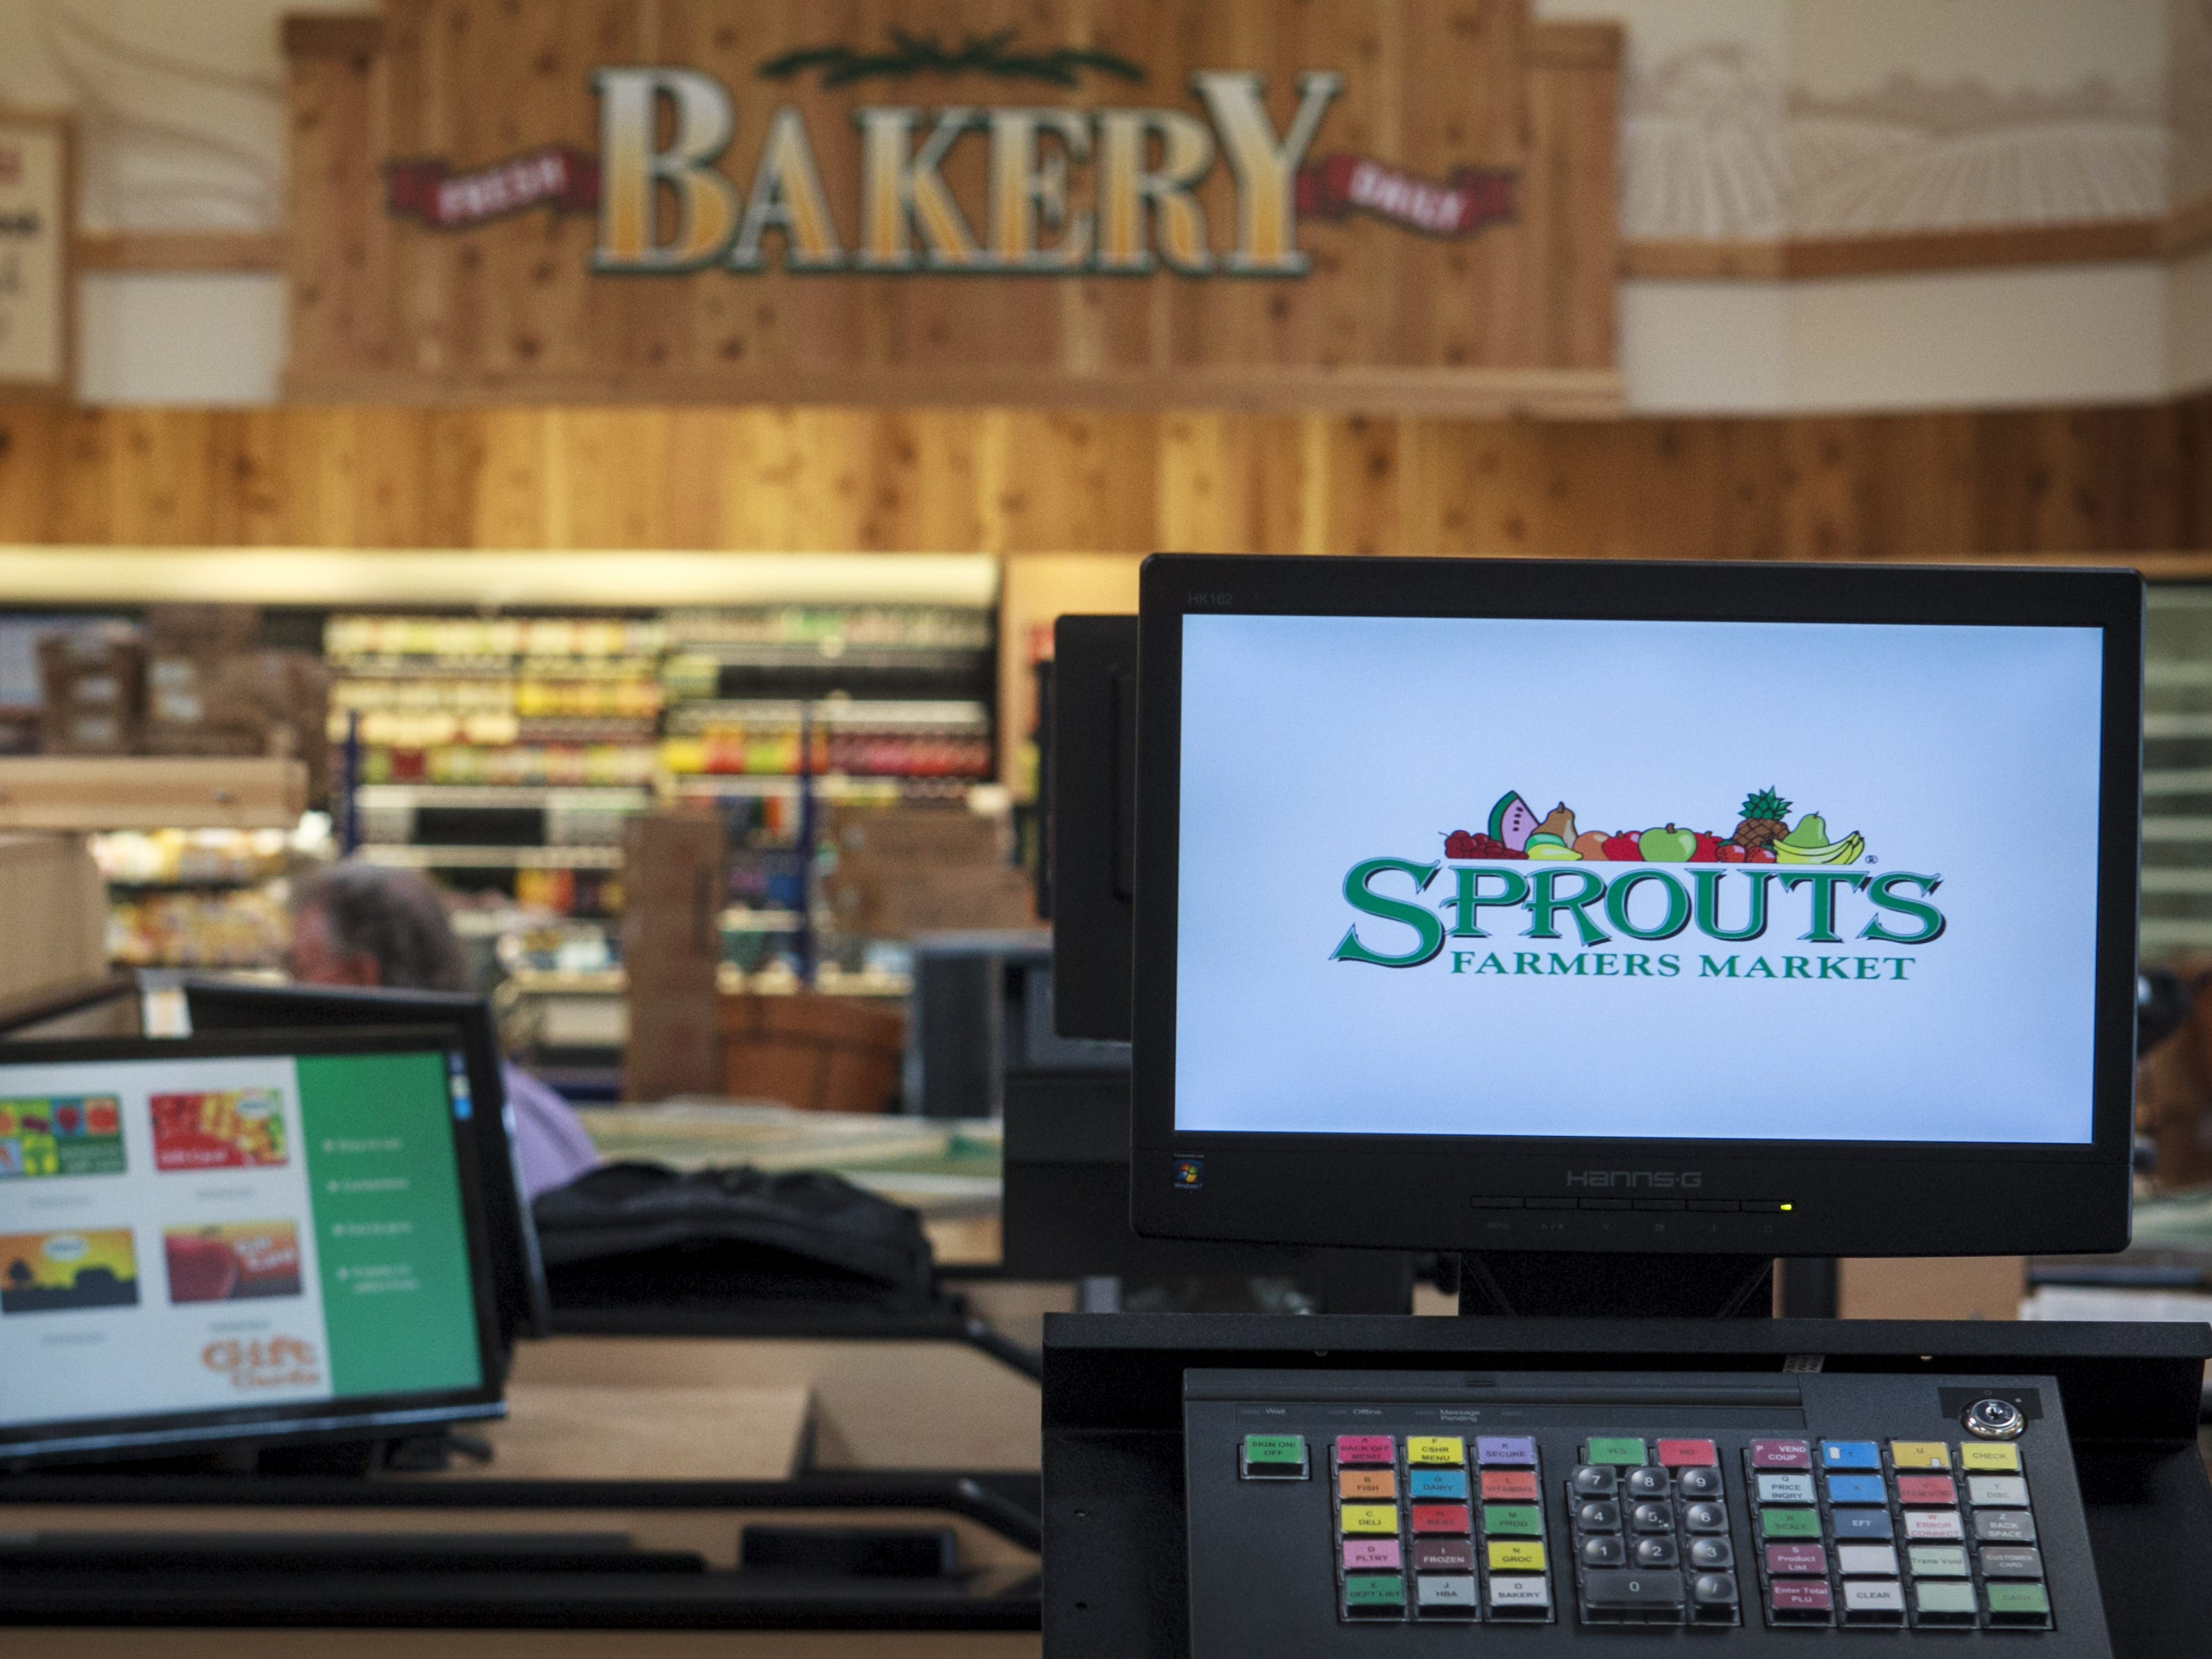 Sprouts Farmers Market, hiring 210. The Phoenix-based grocer is adding positions ranging from cashier to store manager. More info: about.sprouts.com/careers.